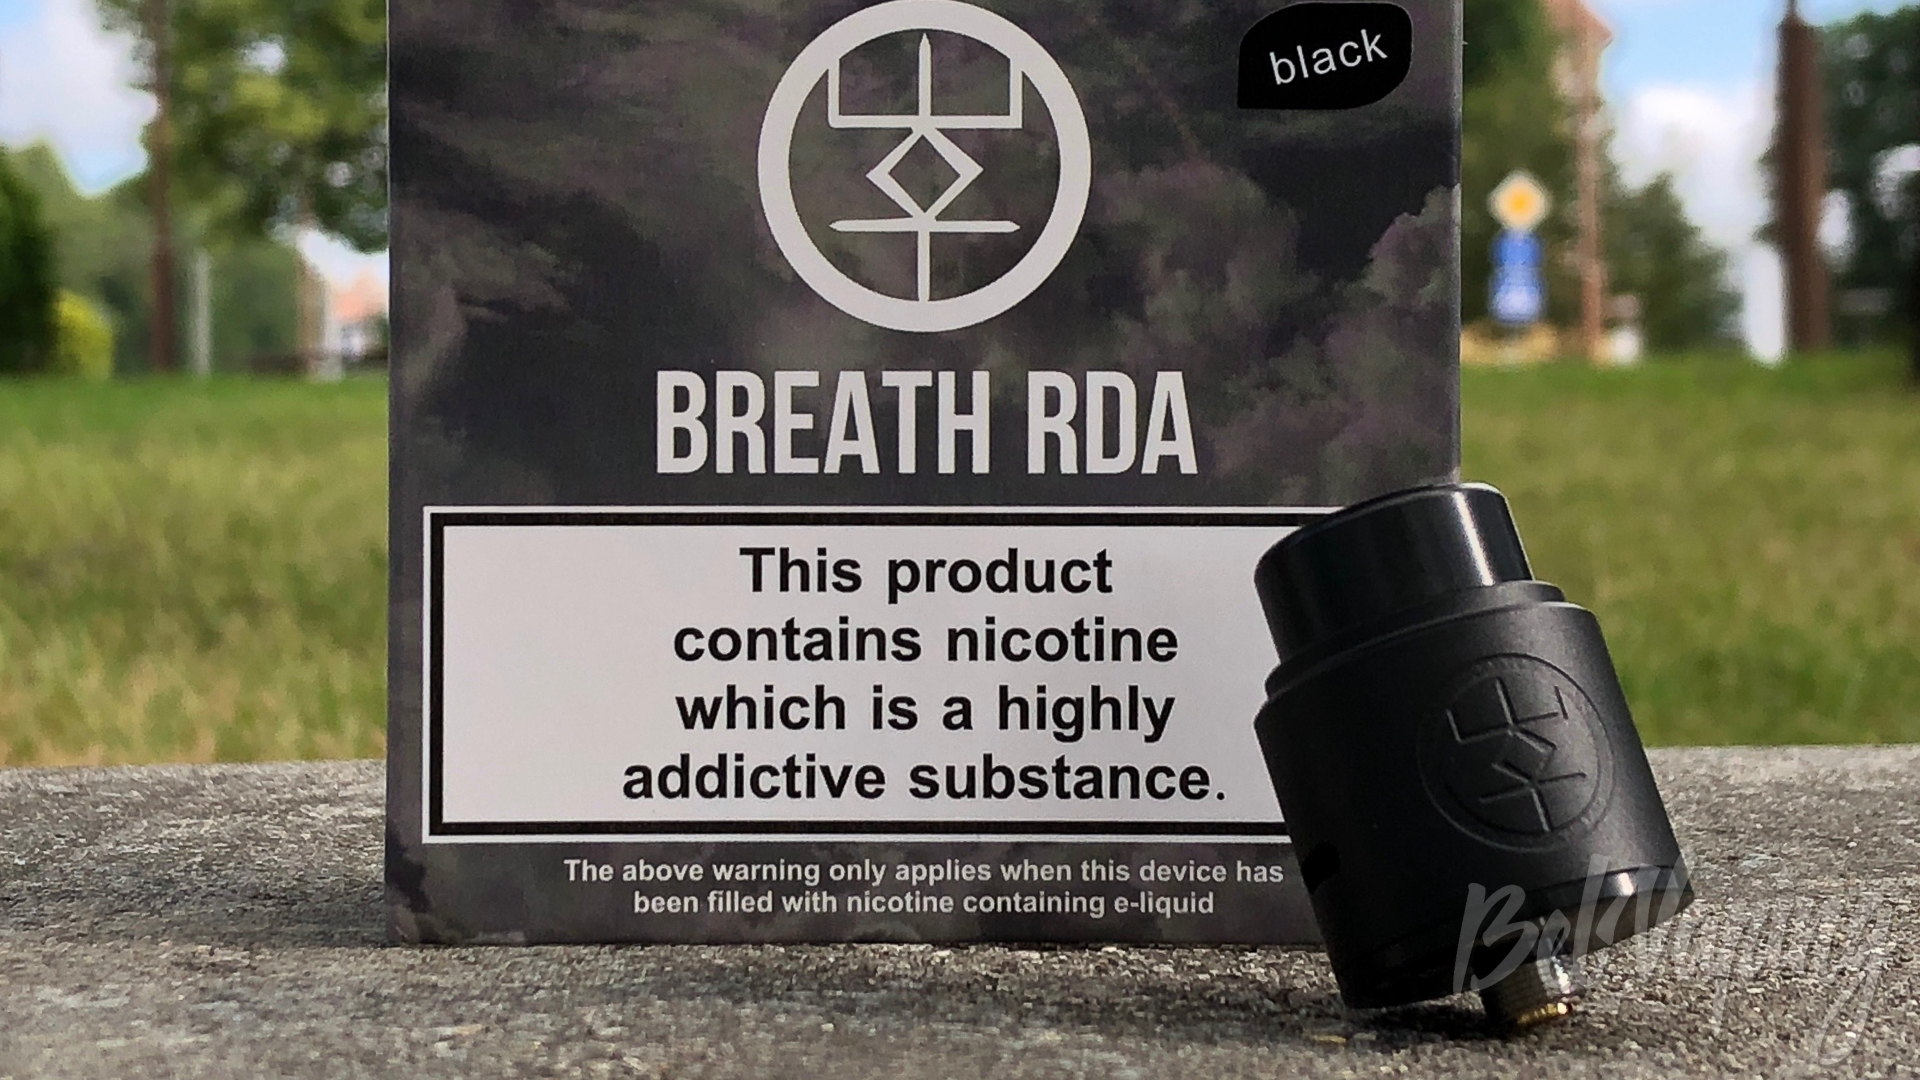 Обзор дрипки Breath RDA от Advken